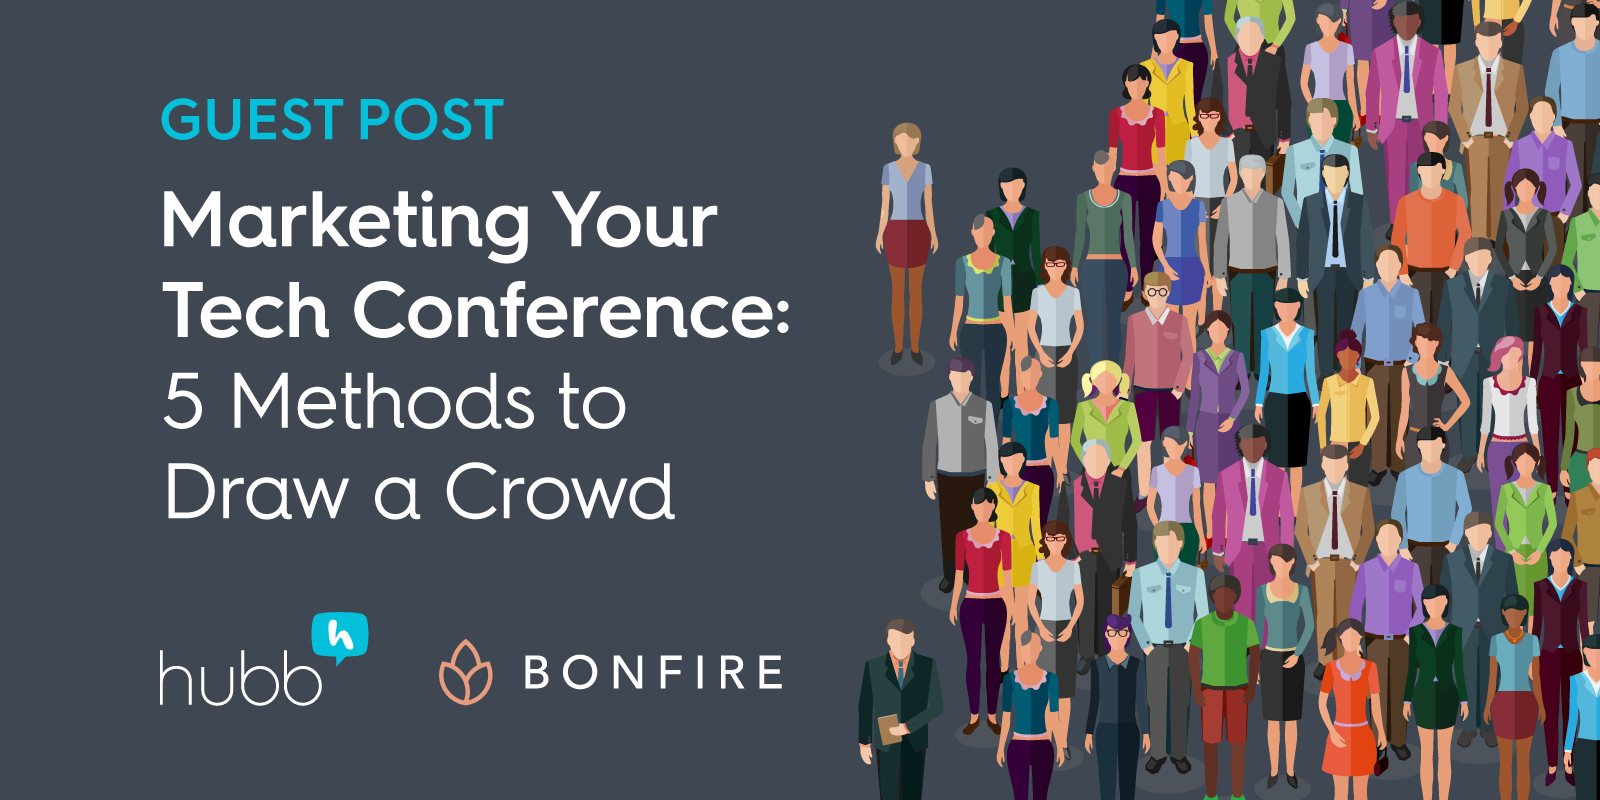 Marketing Your Tech Conference: 5 Methods to Draw a Crowd